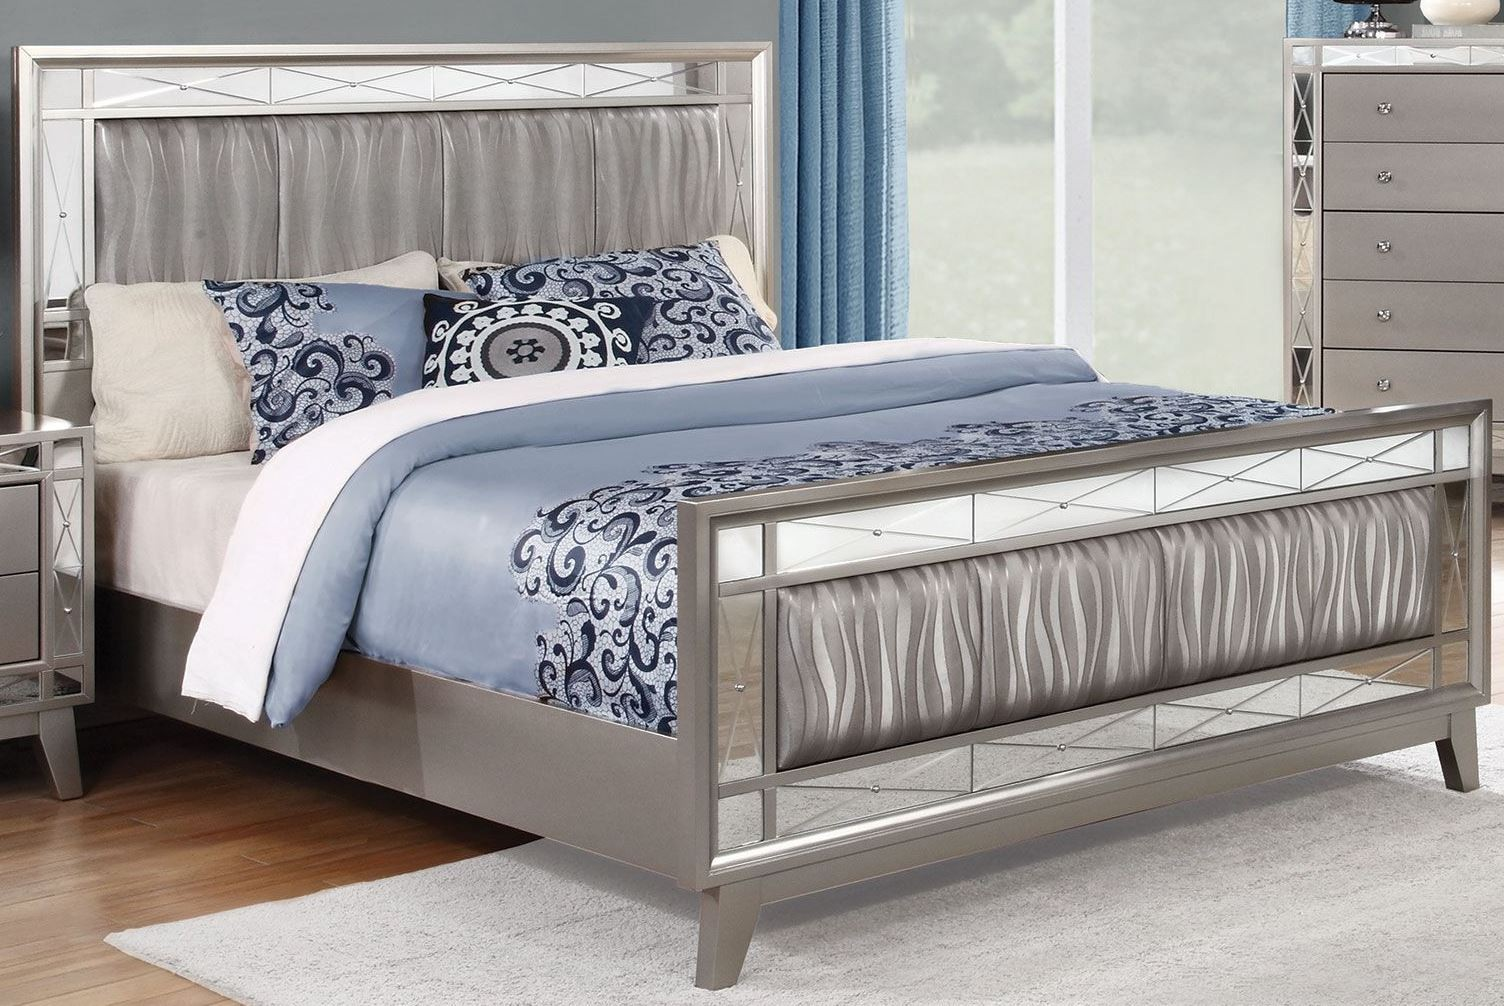 Leighton metallic mercury panel bedroom set 1stopbedrooms - Bedroom furniture sets buy now pay later ...